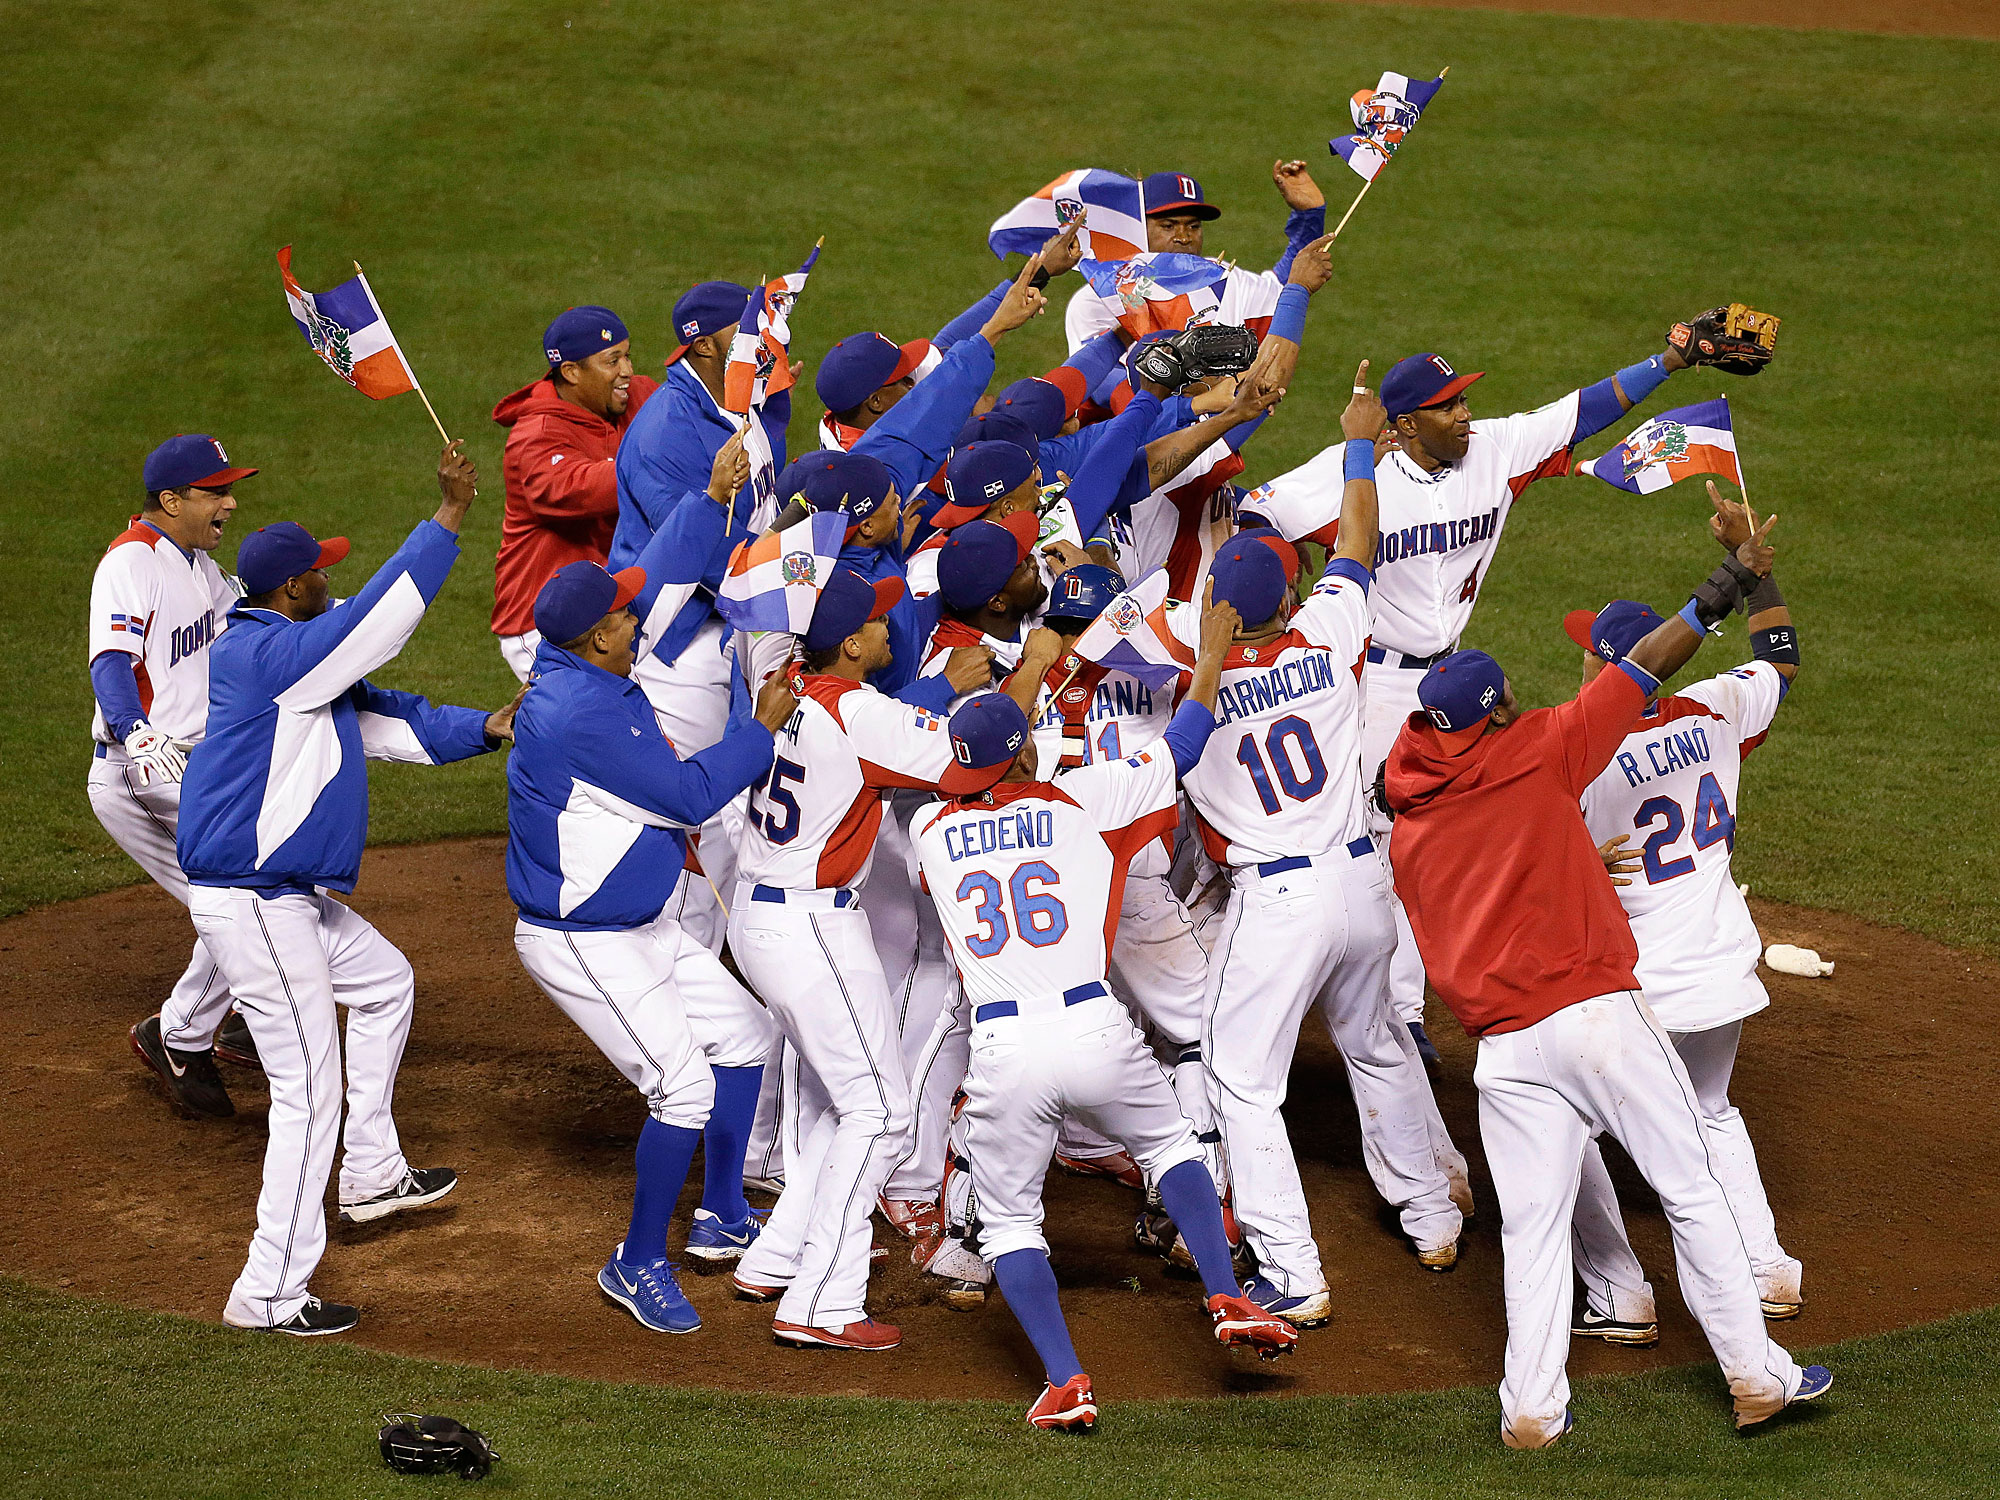 The Dominican Republic won the 2013 World Baseball Classic.